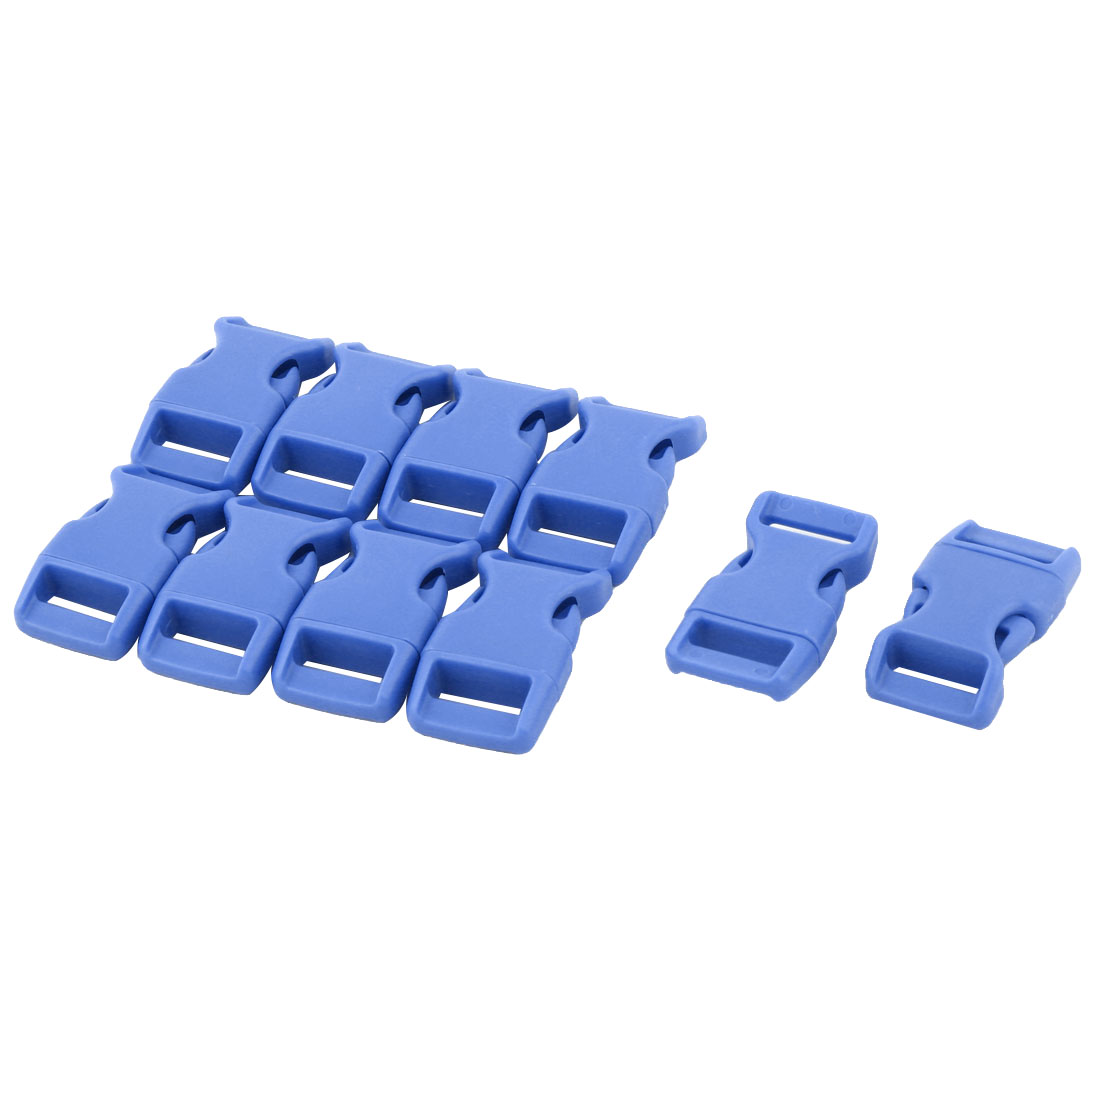 Handbag Plastic Strap Webbing Adjustive Connecting Quick Release Buckle Blue 10 Pcs